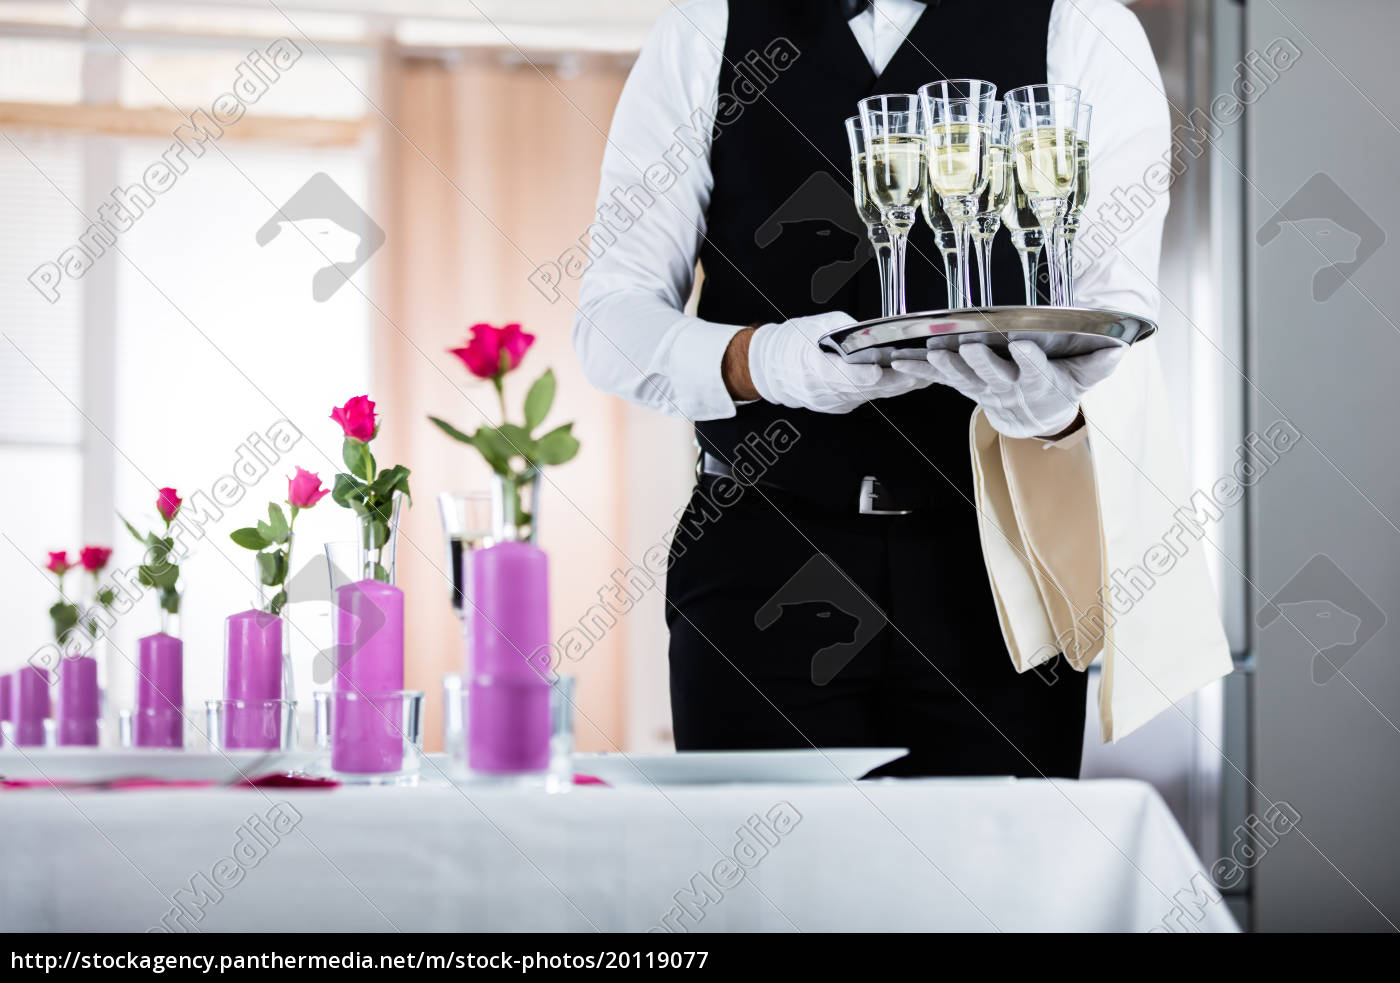 waiter, standing, with, champagne, glasses - 20119077